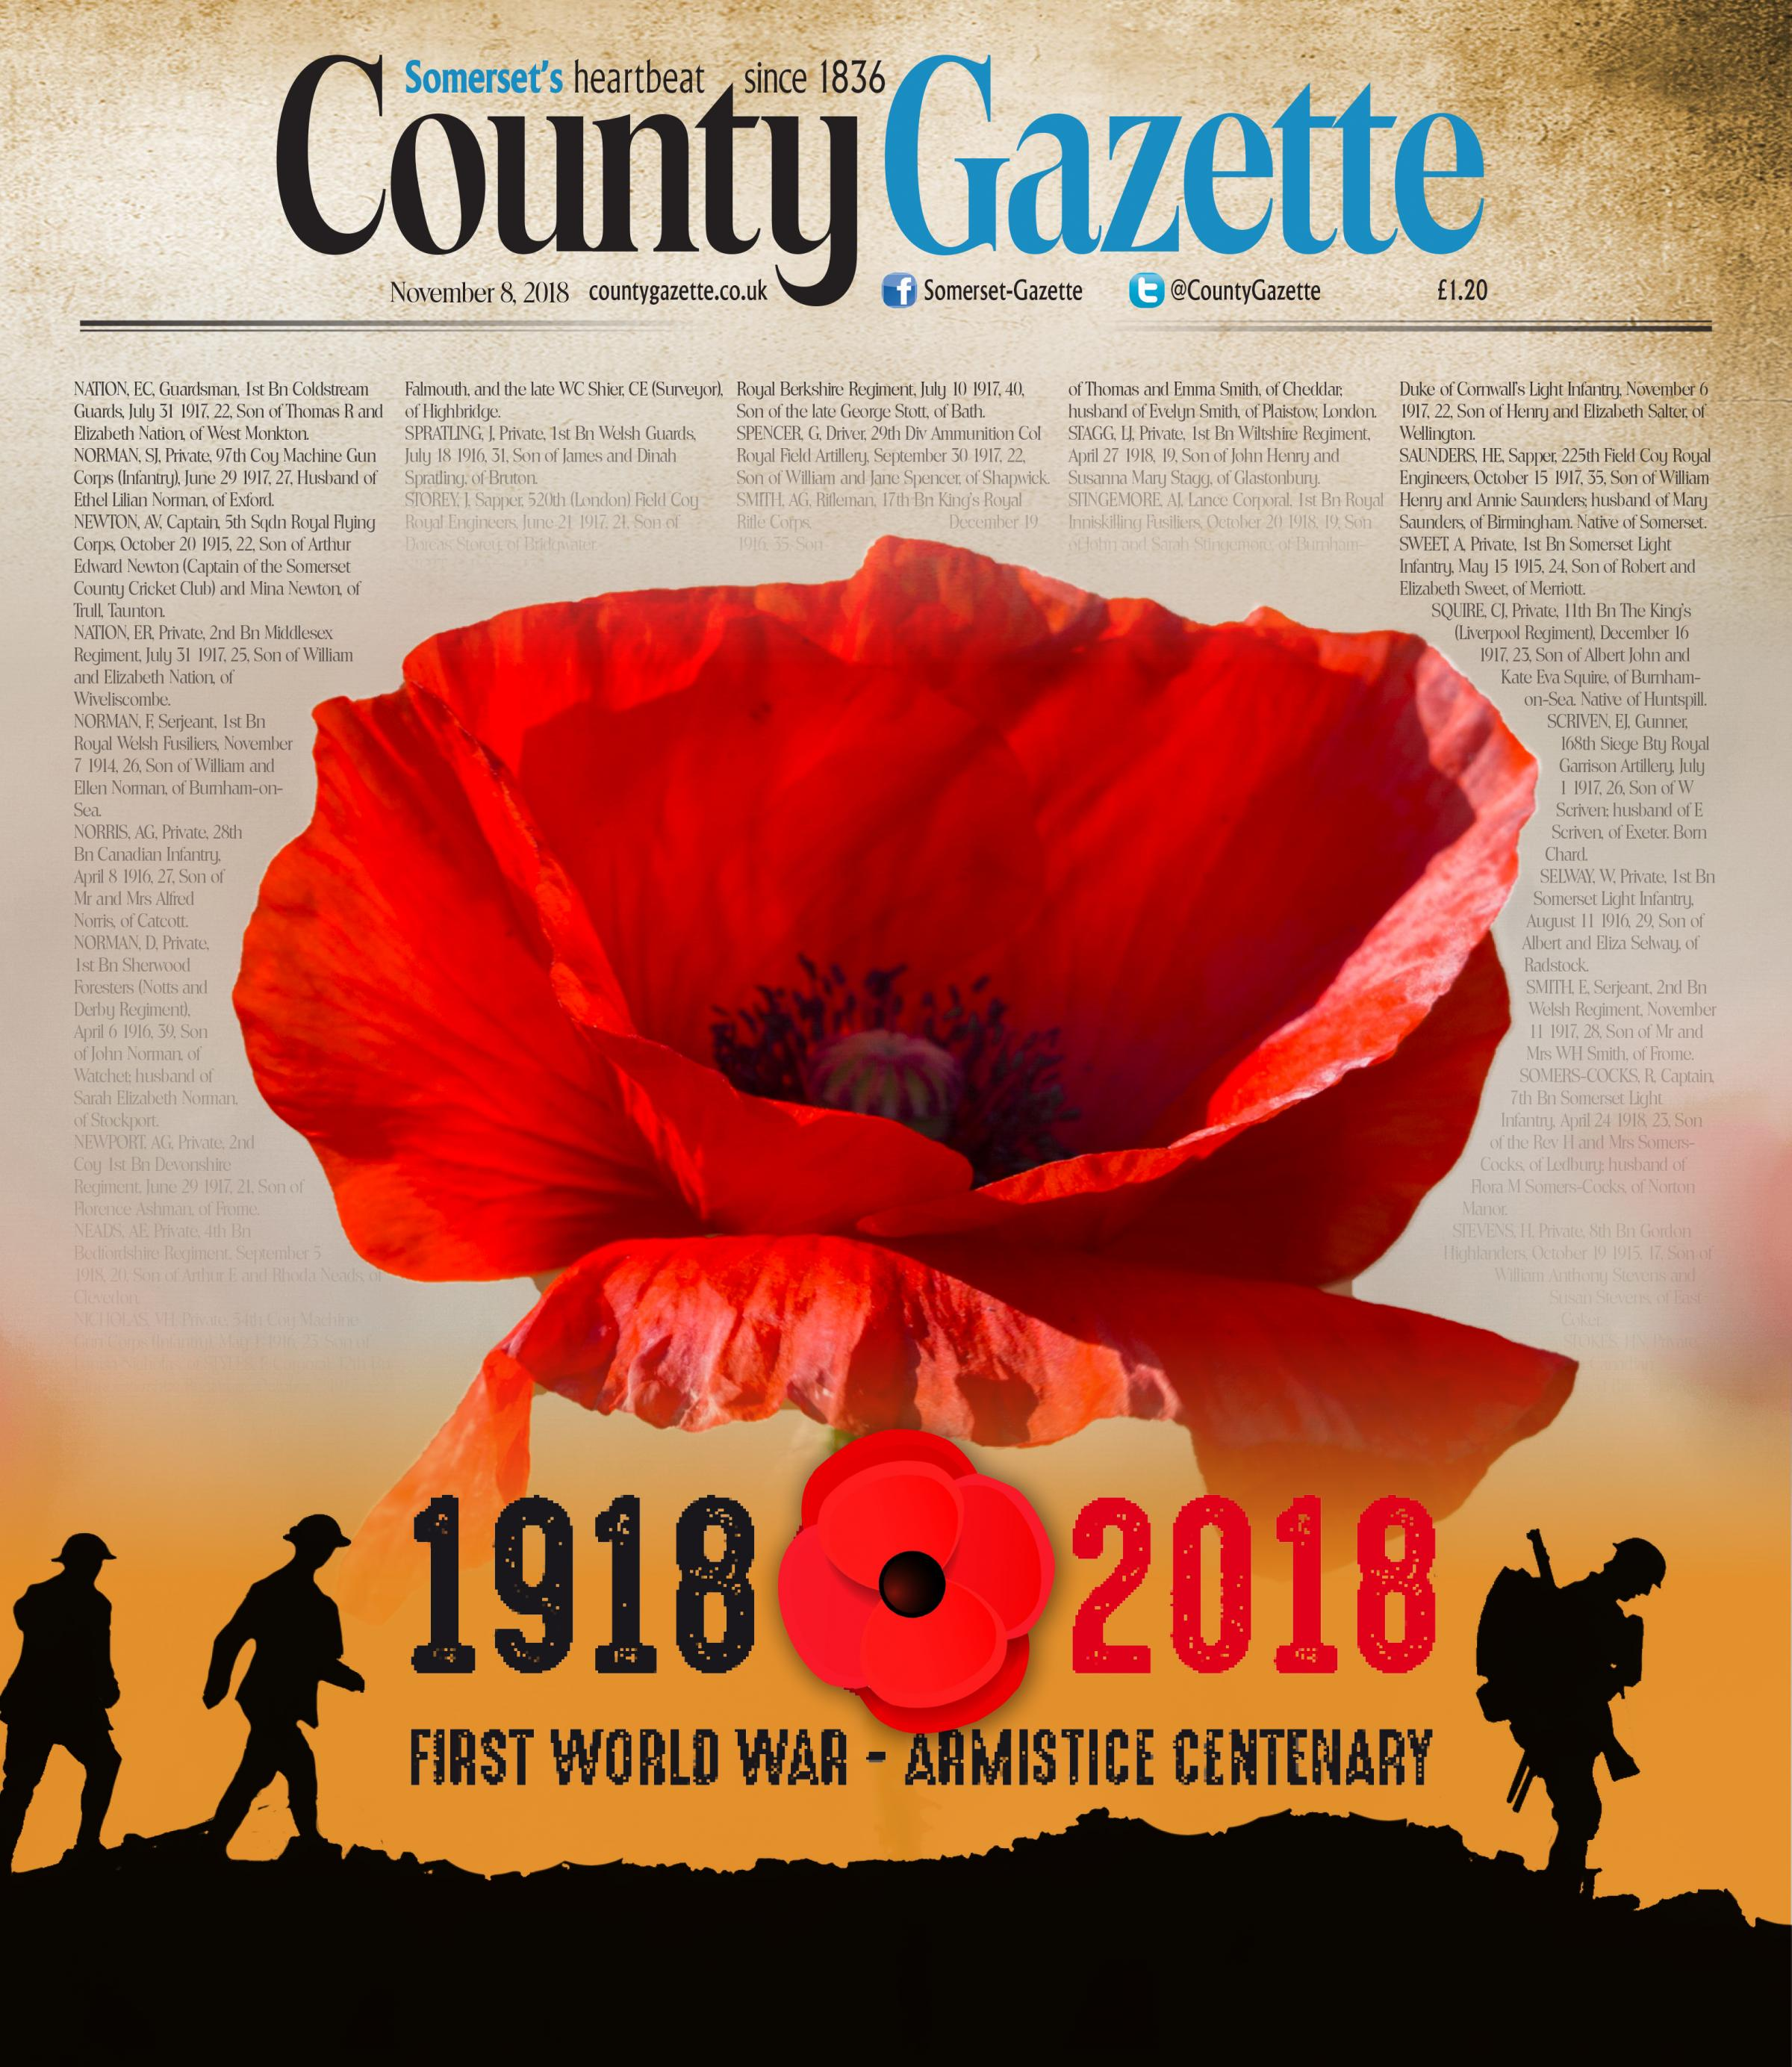 SPECIAL EDITION: The County Gazette